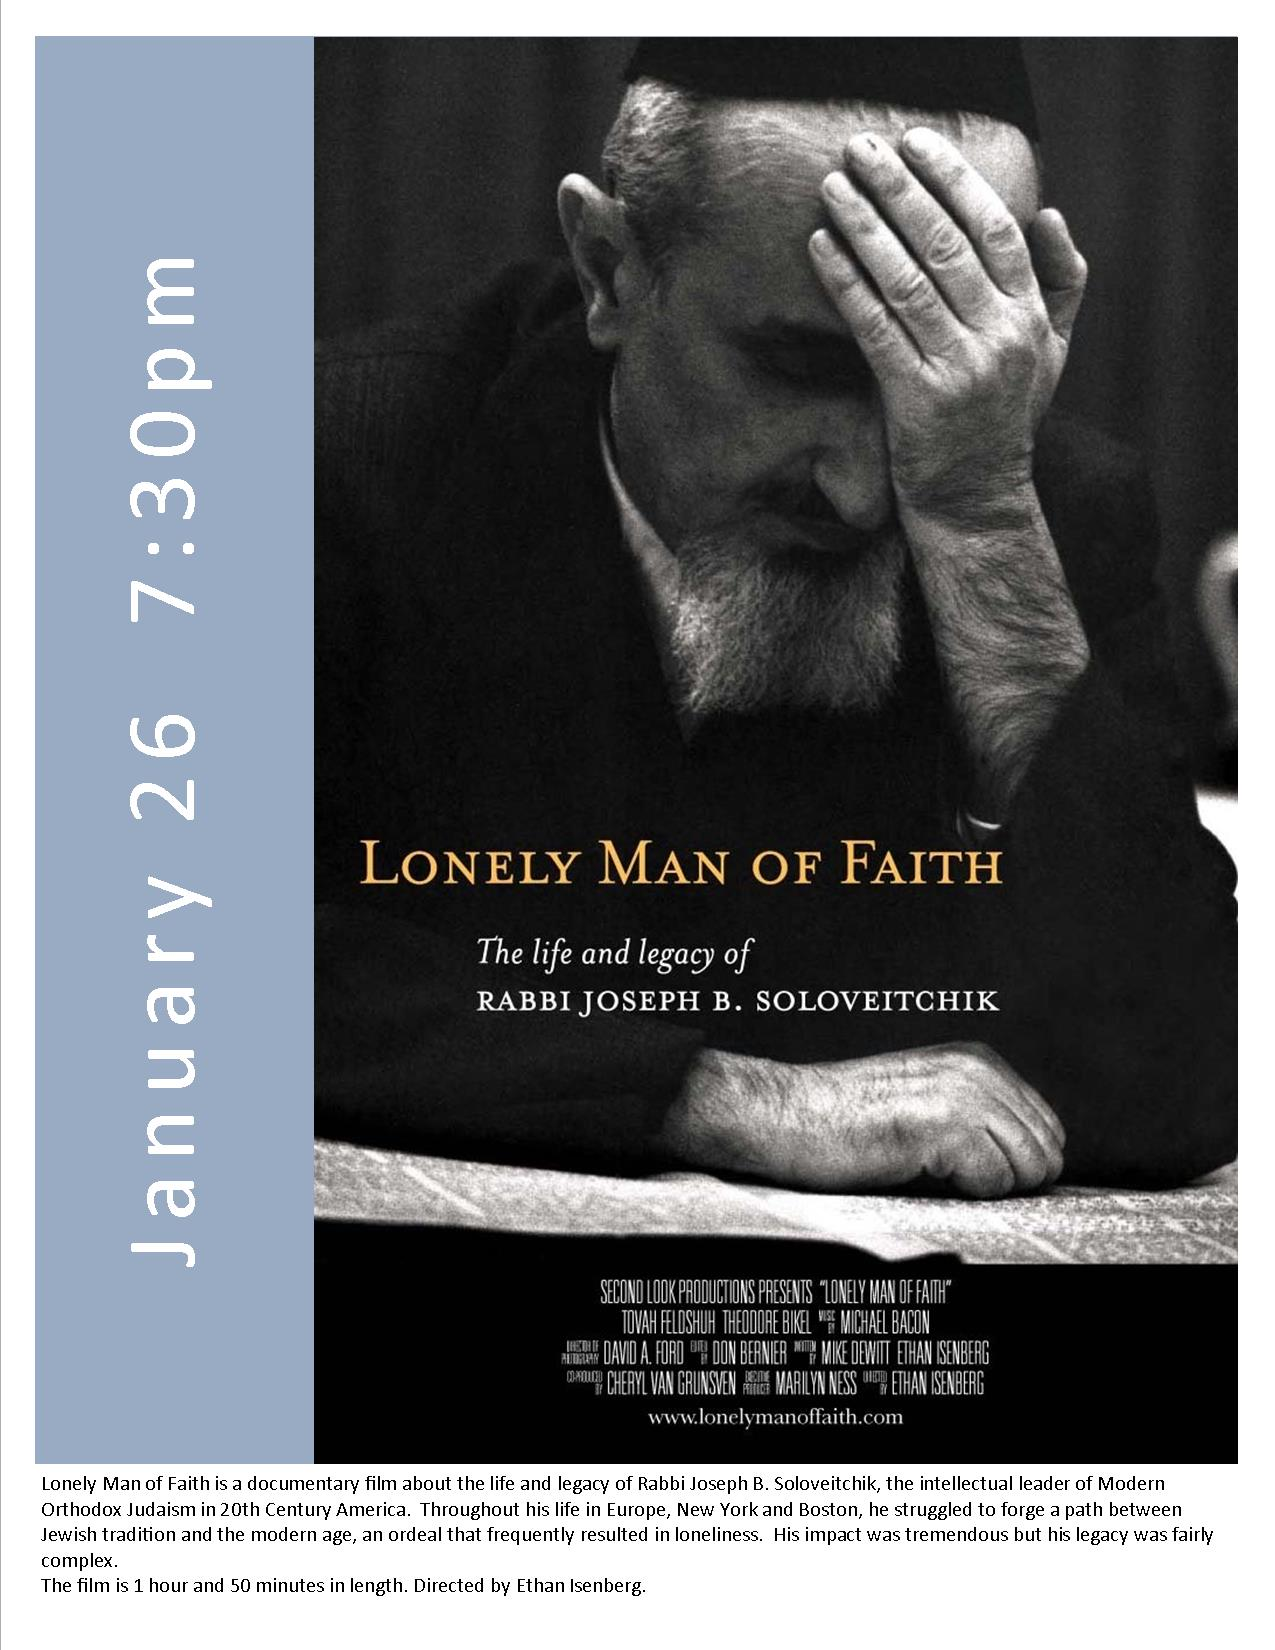 "<a href=""https://images.shulcloud.com/590/uploads/5780/Education-Programs/lonelymanoffaithmovie.pdf""